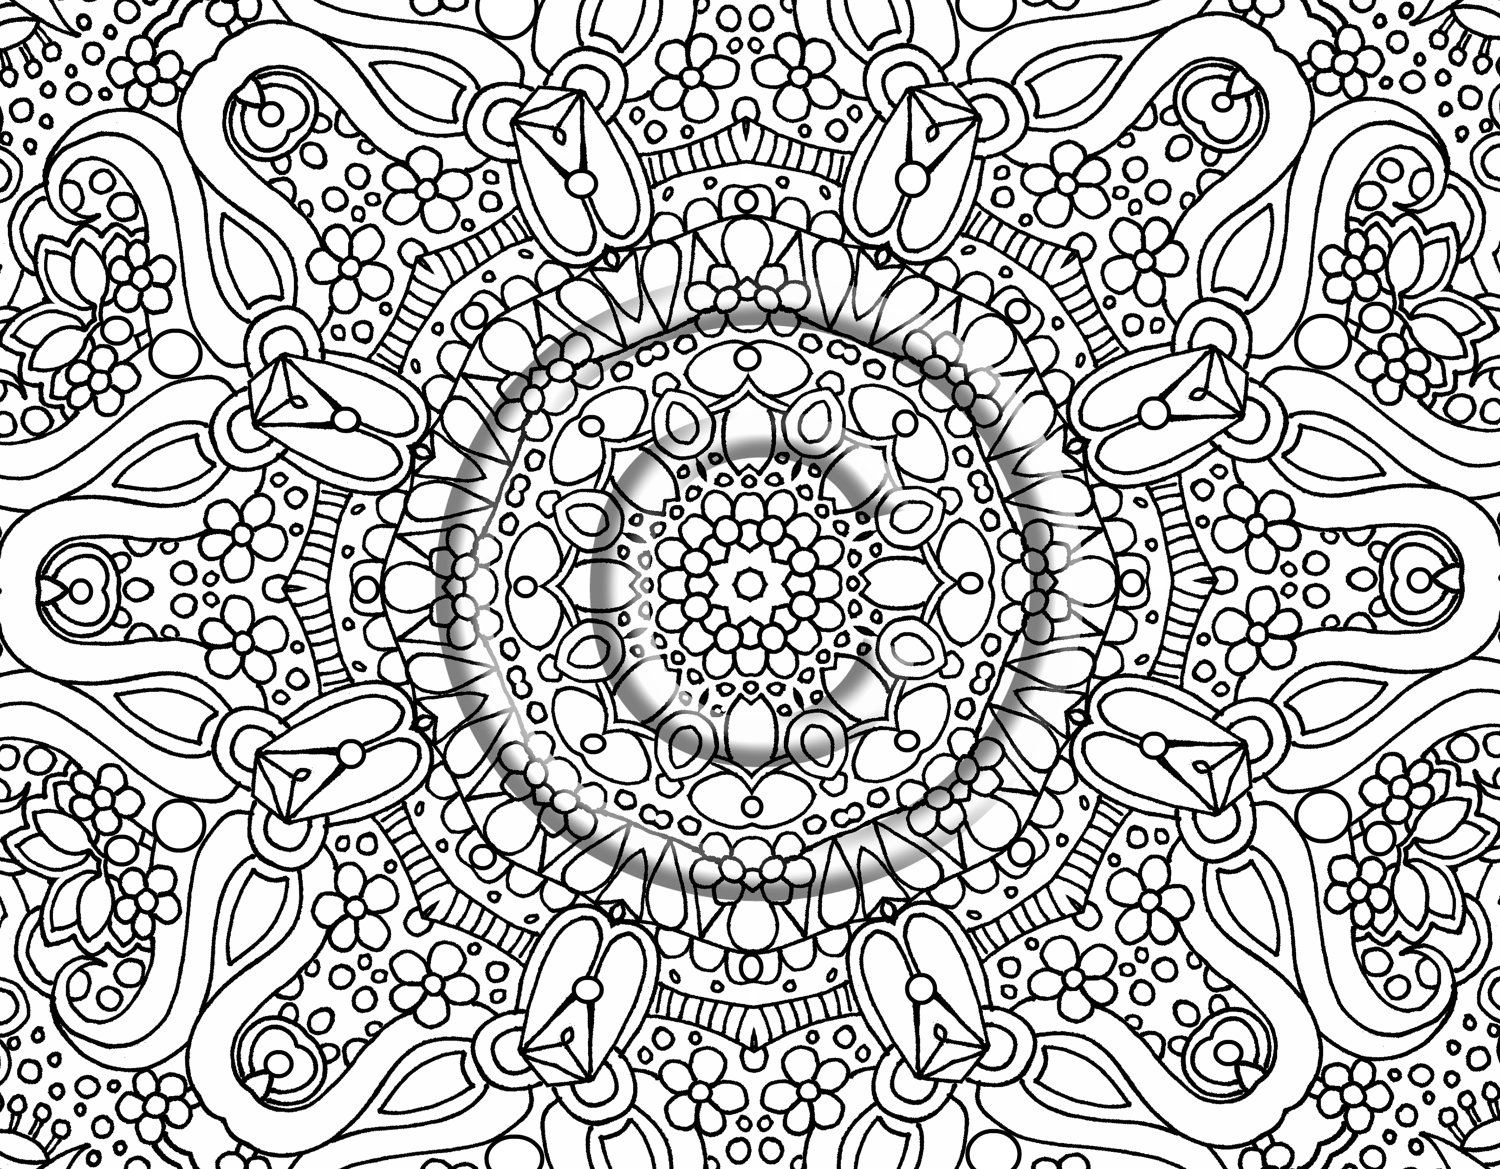 Printable coloring books adults - Hard Coloring Pages